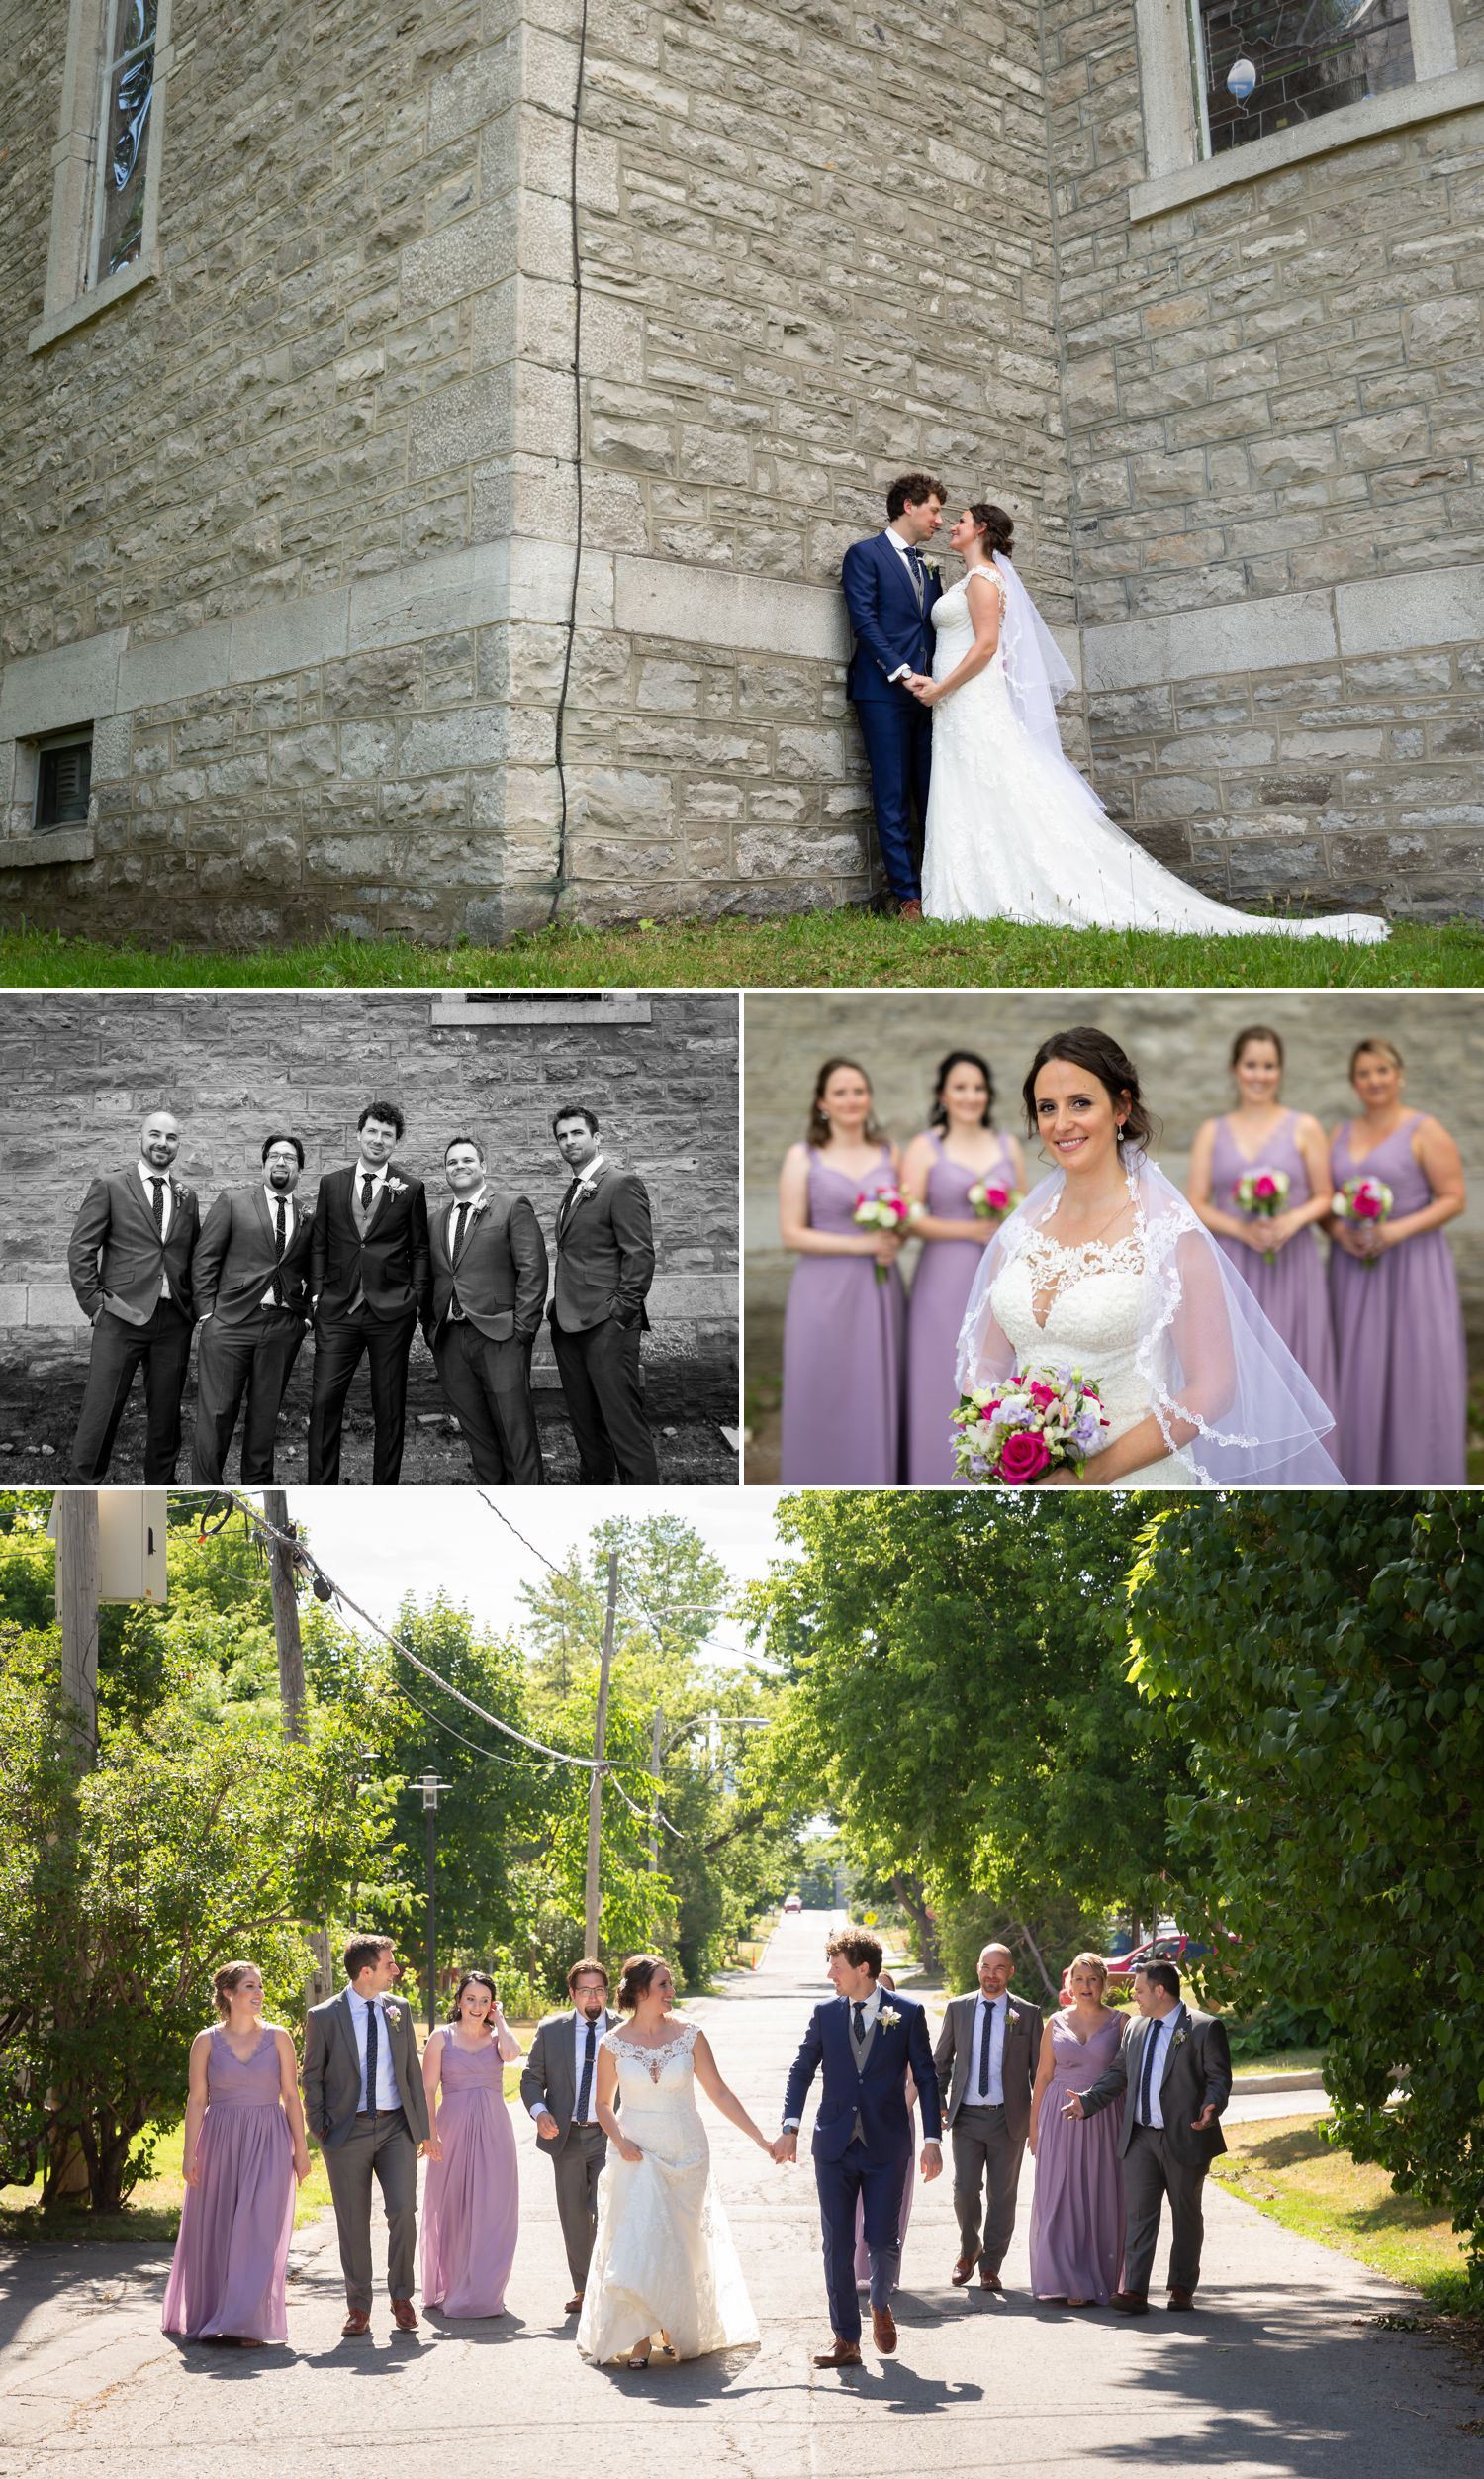 Portraits of the bride and groom and their wedding party taken outside Saint Stephen's Parish in Chelsea, Quebec